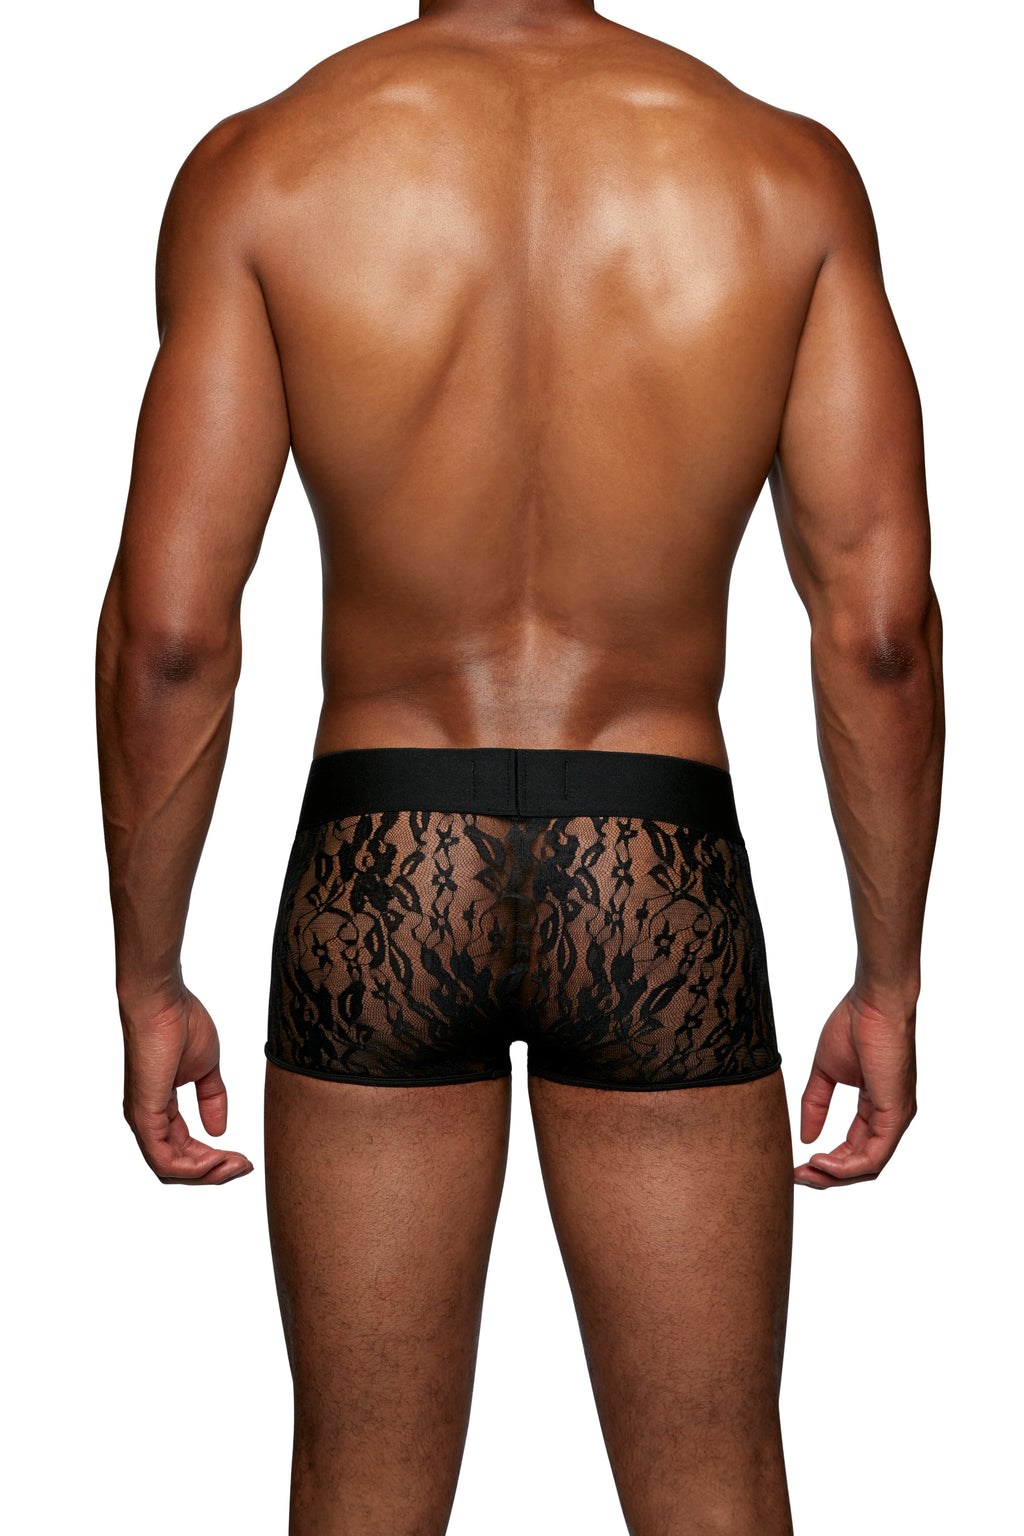 LOW RISE TRUNK in LACE SPANDEX - MENAGERIE Intimates MENS Lingerie